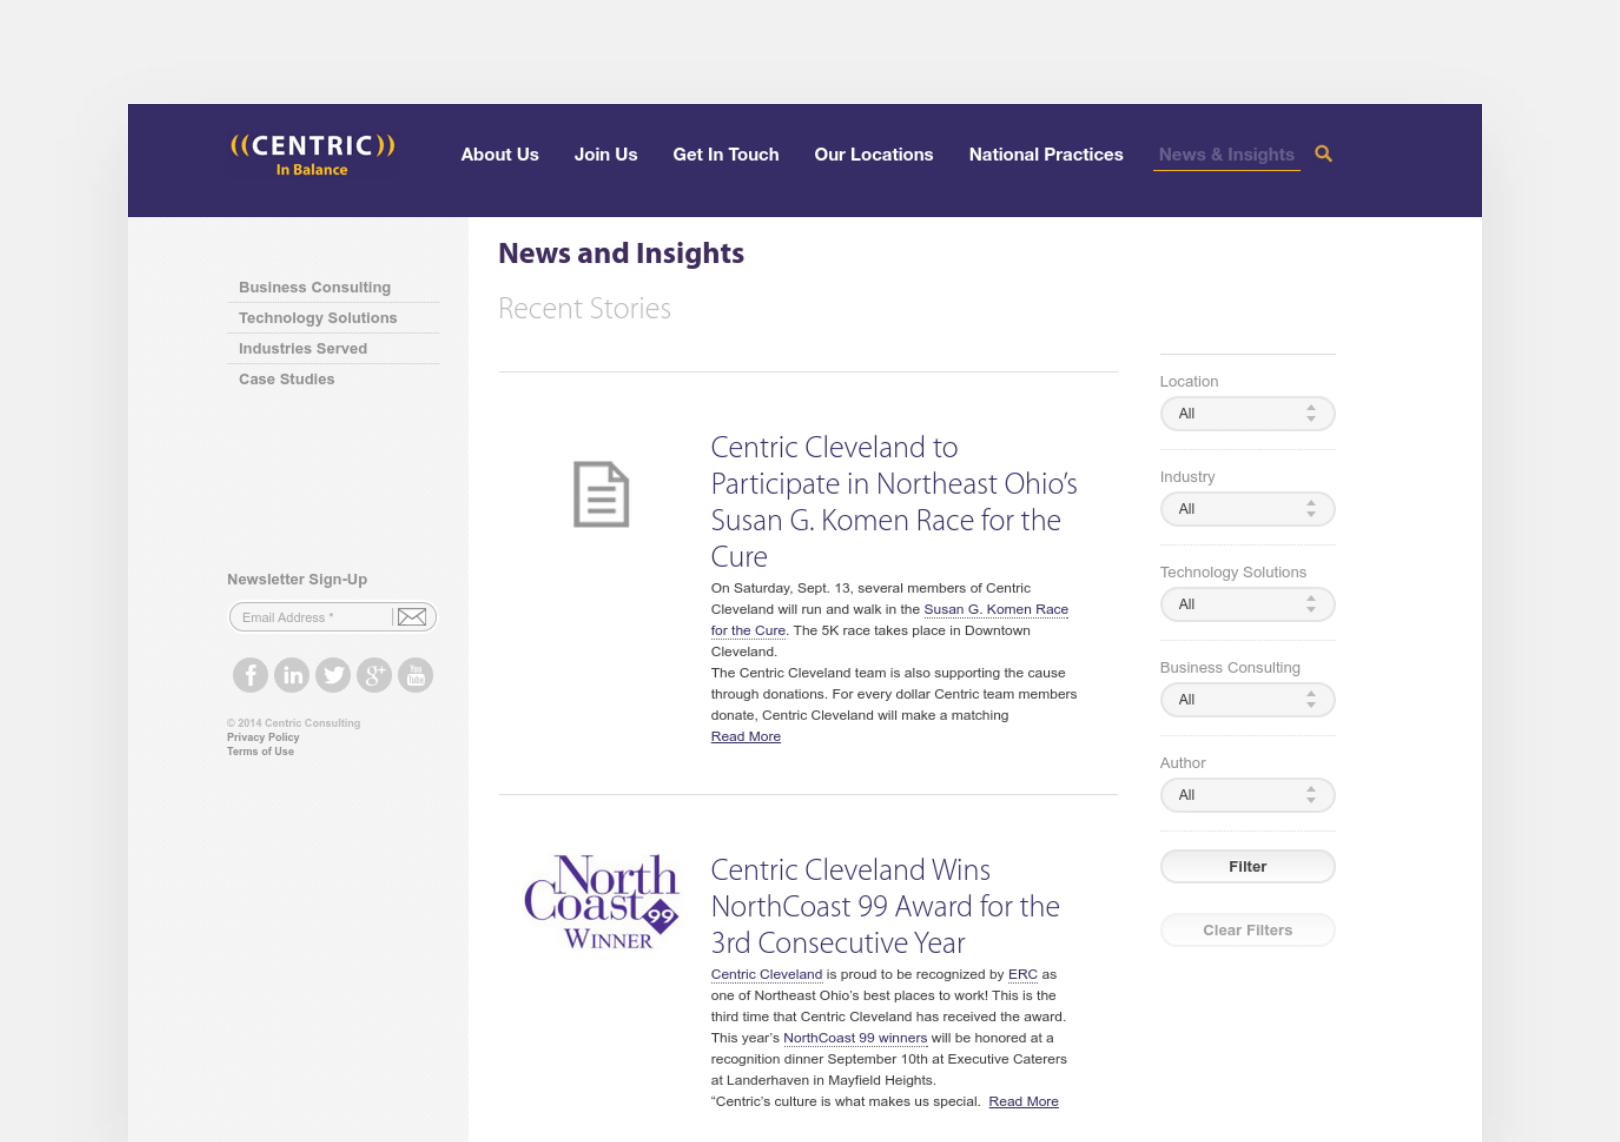 Centric Consulting News and Insights page screenshot